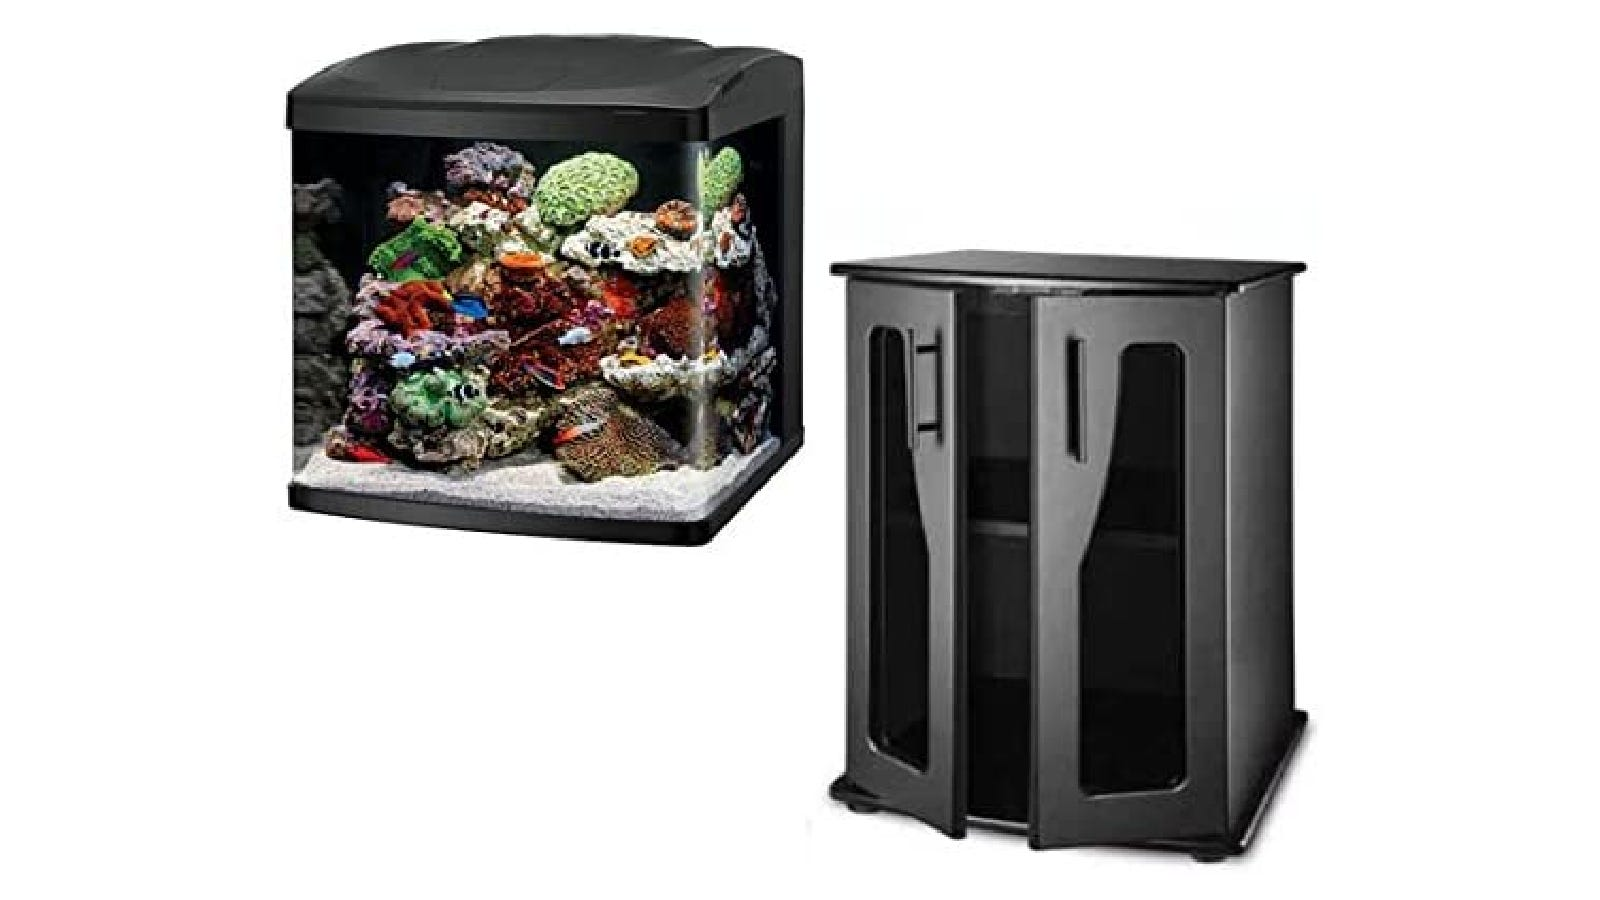 black cabinet-style aquarium stand next to a square fish tank full of water and coral